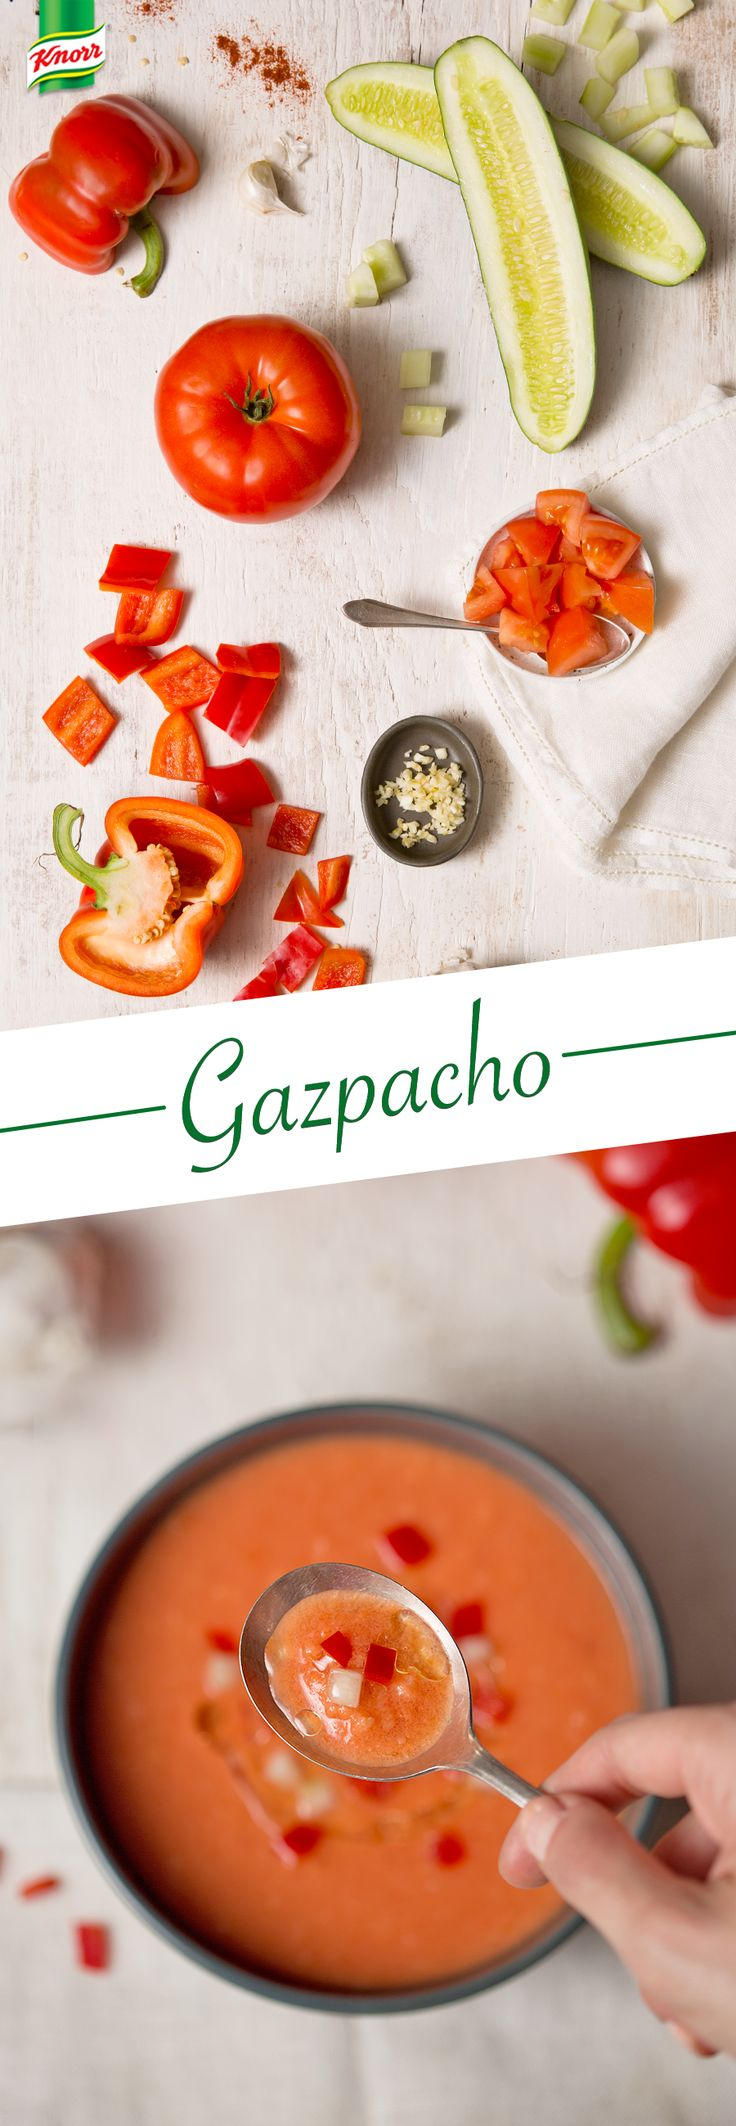 The perfect summertime recipe for chilled soup? Gazpacho! Knorr's easy tomato dish is the best way to beat the season's heat. Drizzle with olive oil for extra flavor.